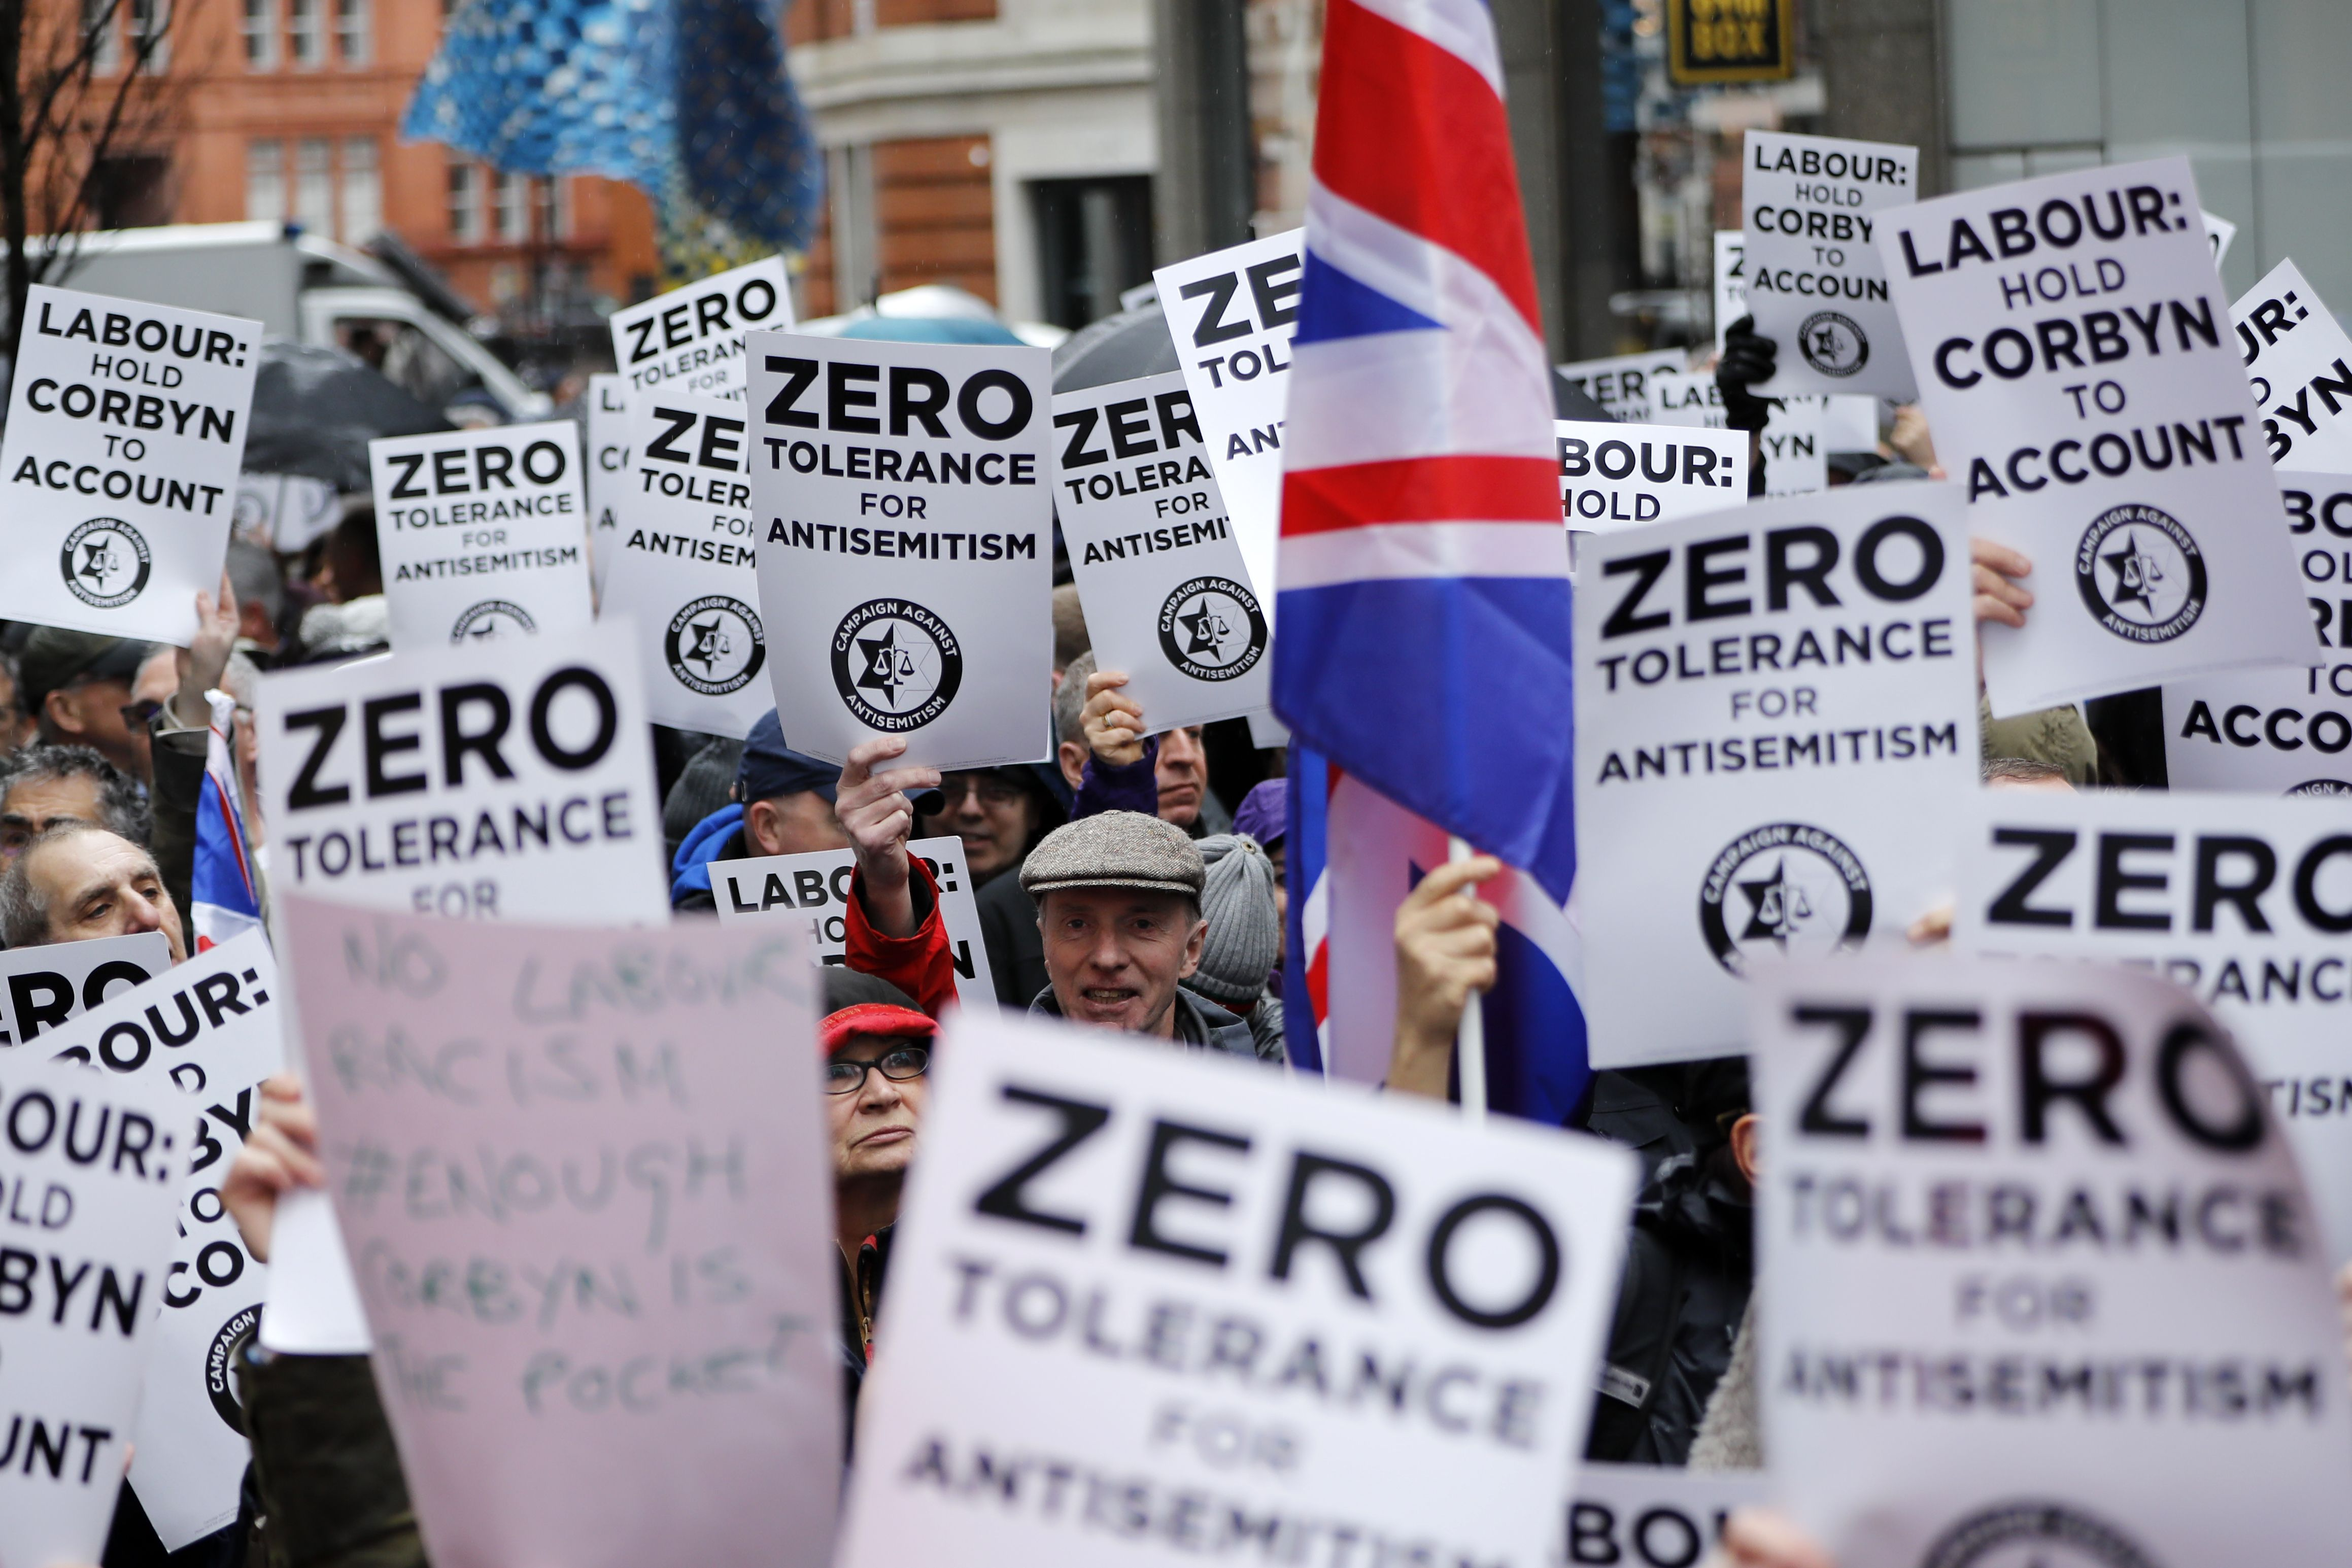 People hold up placards and Union flags as they gather for a demonstration organised by the Campaign Against Anti-Semitism outside the office of the Labour Party. Labour leader Jeremy Corbyn has been under increasing pressure to address multiple allegations of anti-Semitism within the party. (Tolda Akmen/AFP/Getty Images)